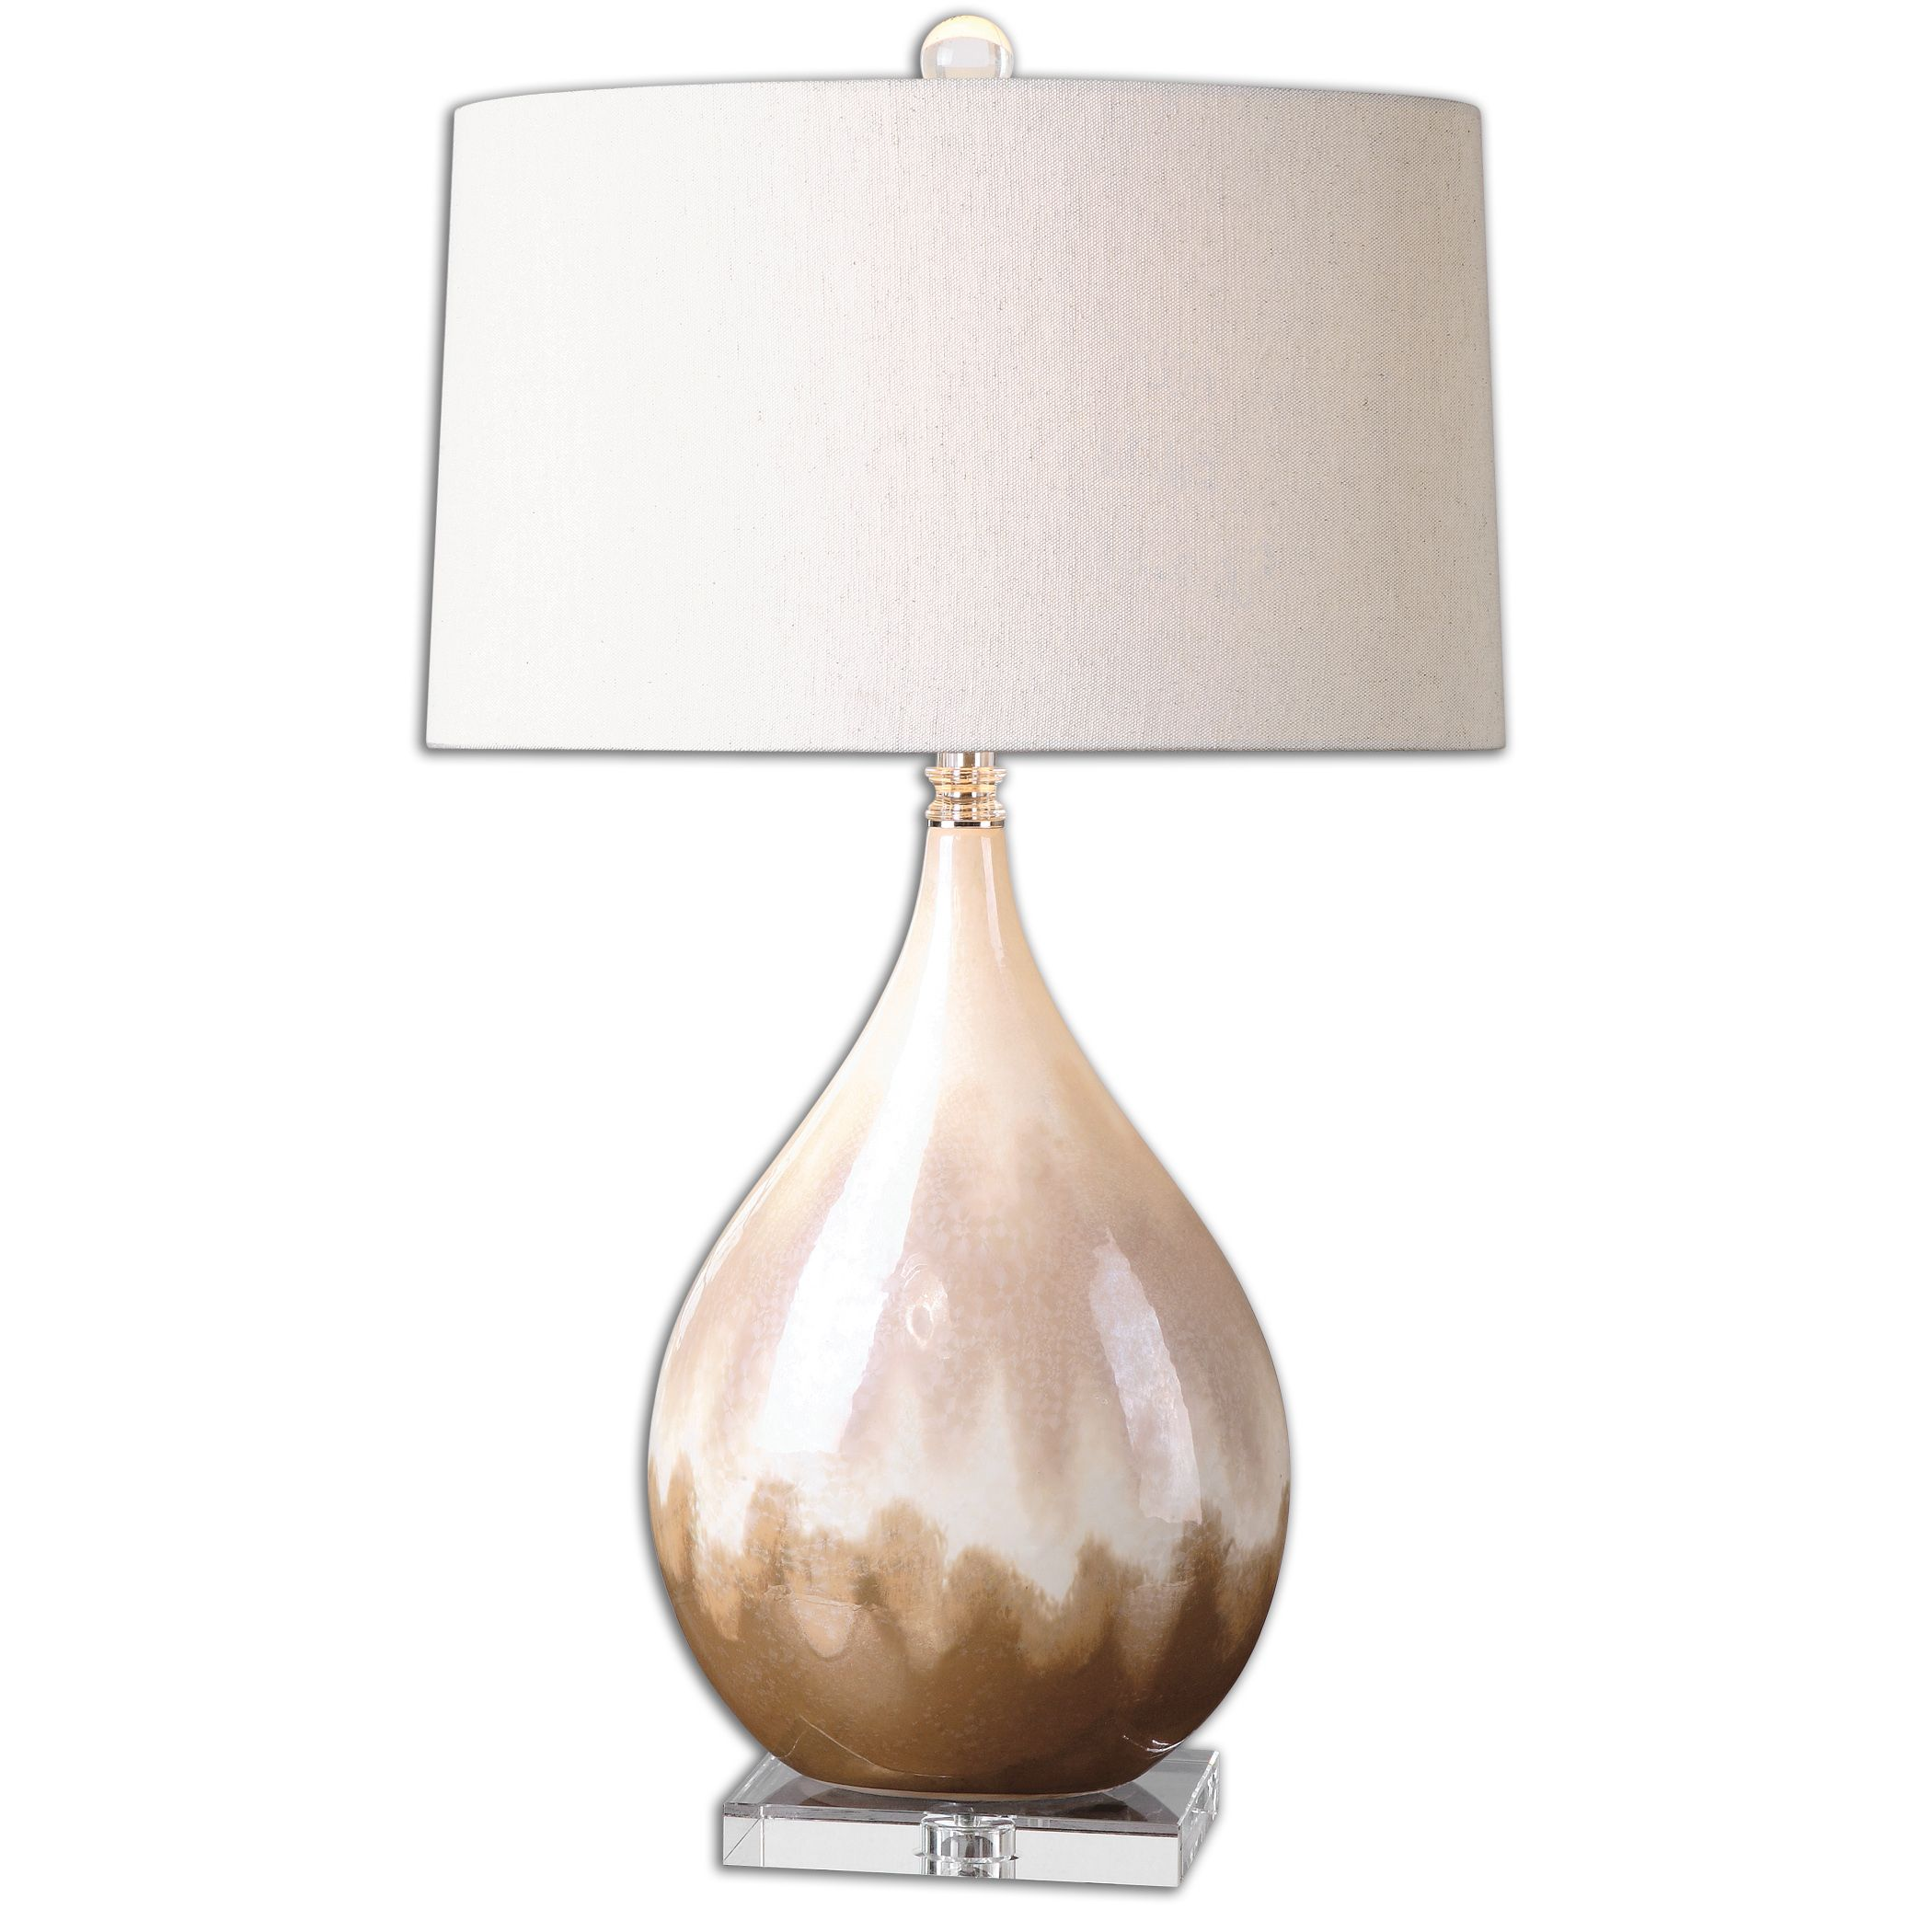 Uttermost - One Light Table Lamp - Lamps - Flavian - 1 Light Table Lamp